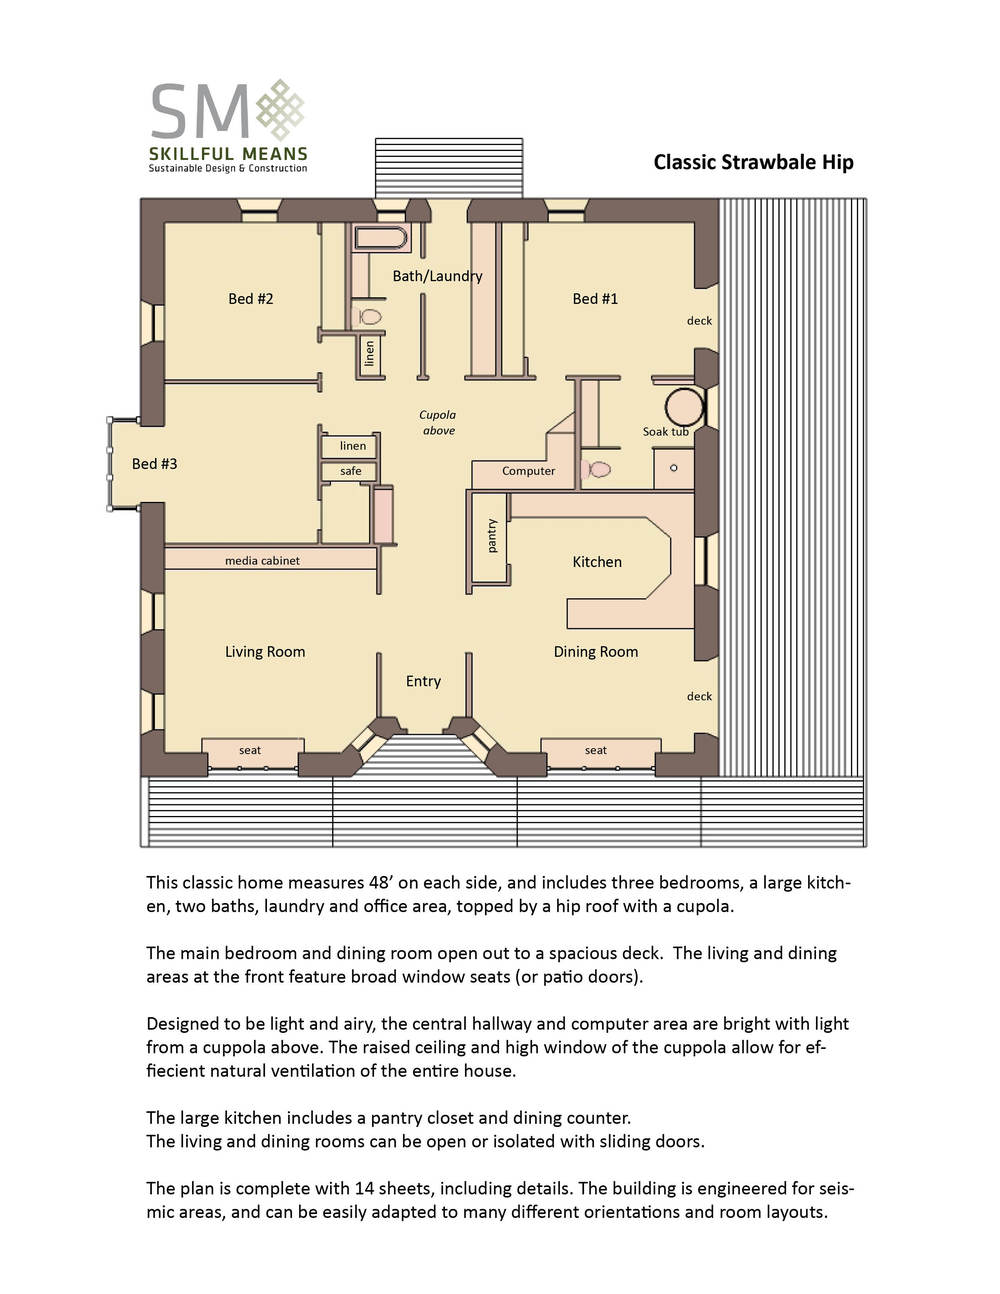 house plans classic strawbale hip - Square House Plans